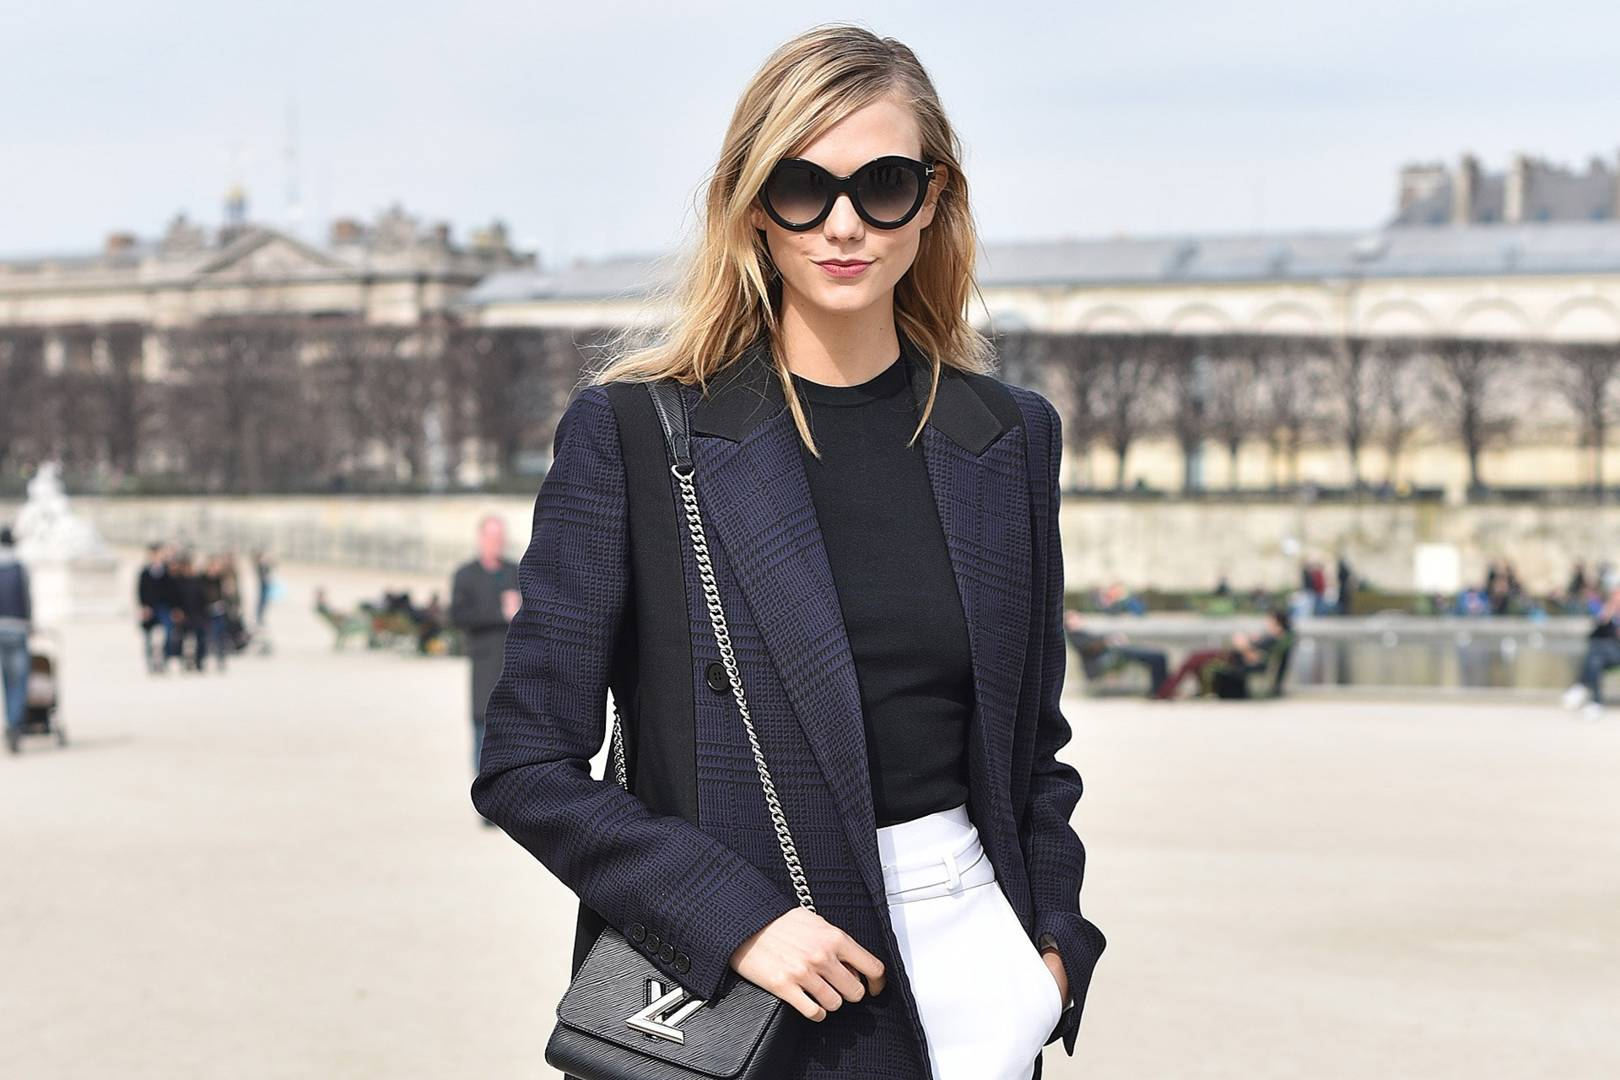 Paris Fashion Week An Insider Guide By Karlie Kloss Cn Traveller